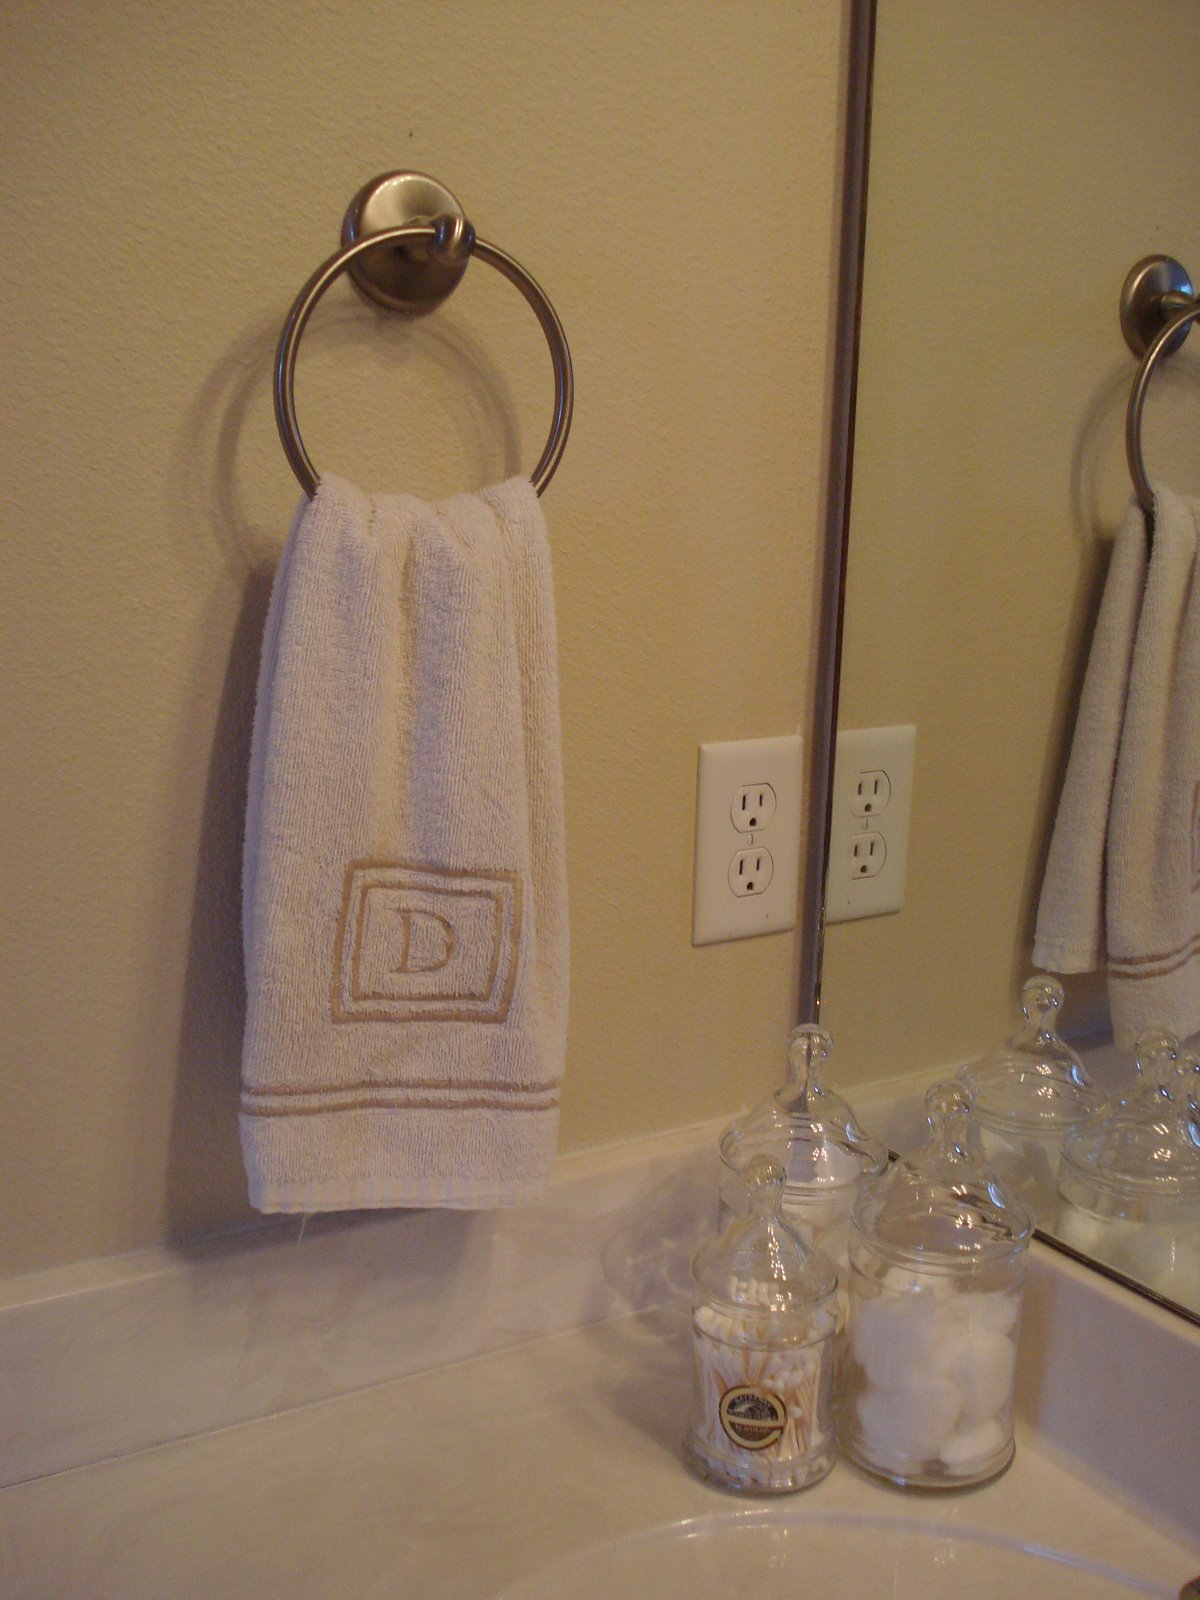 Where To Put Hand Towel In Bathroom 28 Images Towel Bar Towel Bar Where Do You Go The